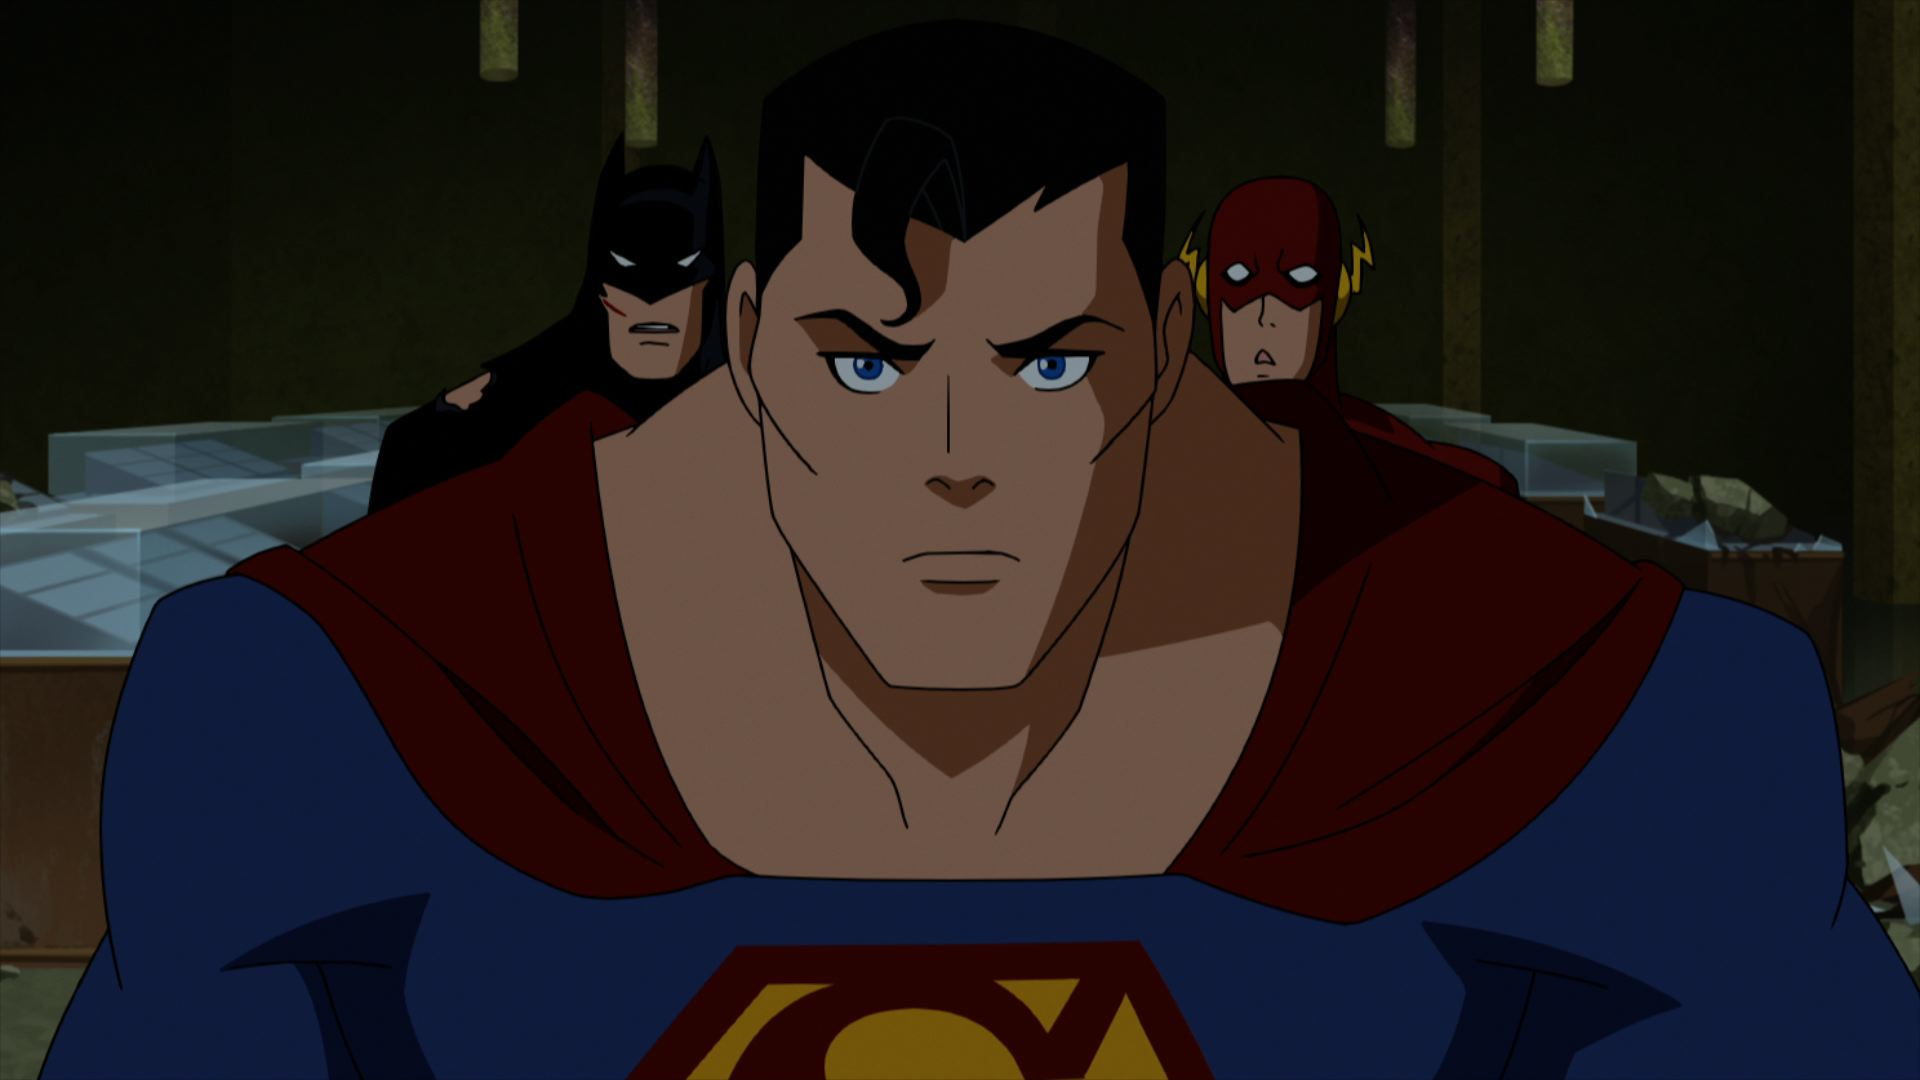 superman the missing link in american Anime's influences was american cartoons becomes clear that this is a missing link in the evolution of anime the fleischers' superman cartoons.